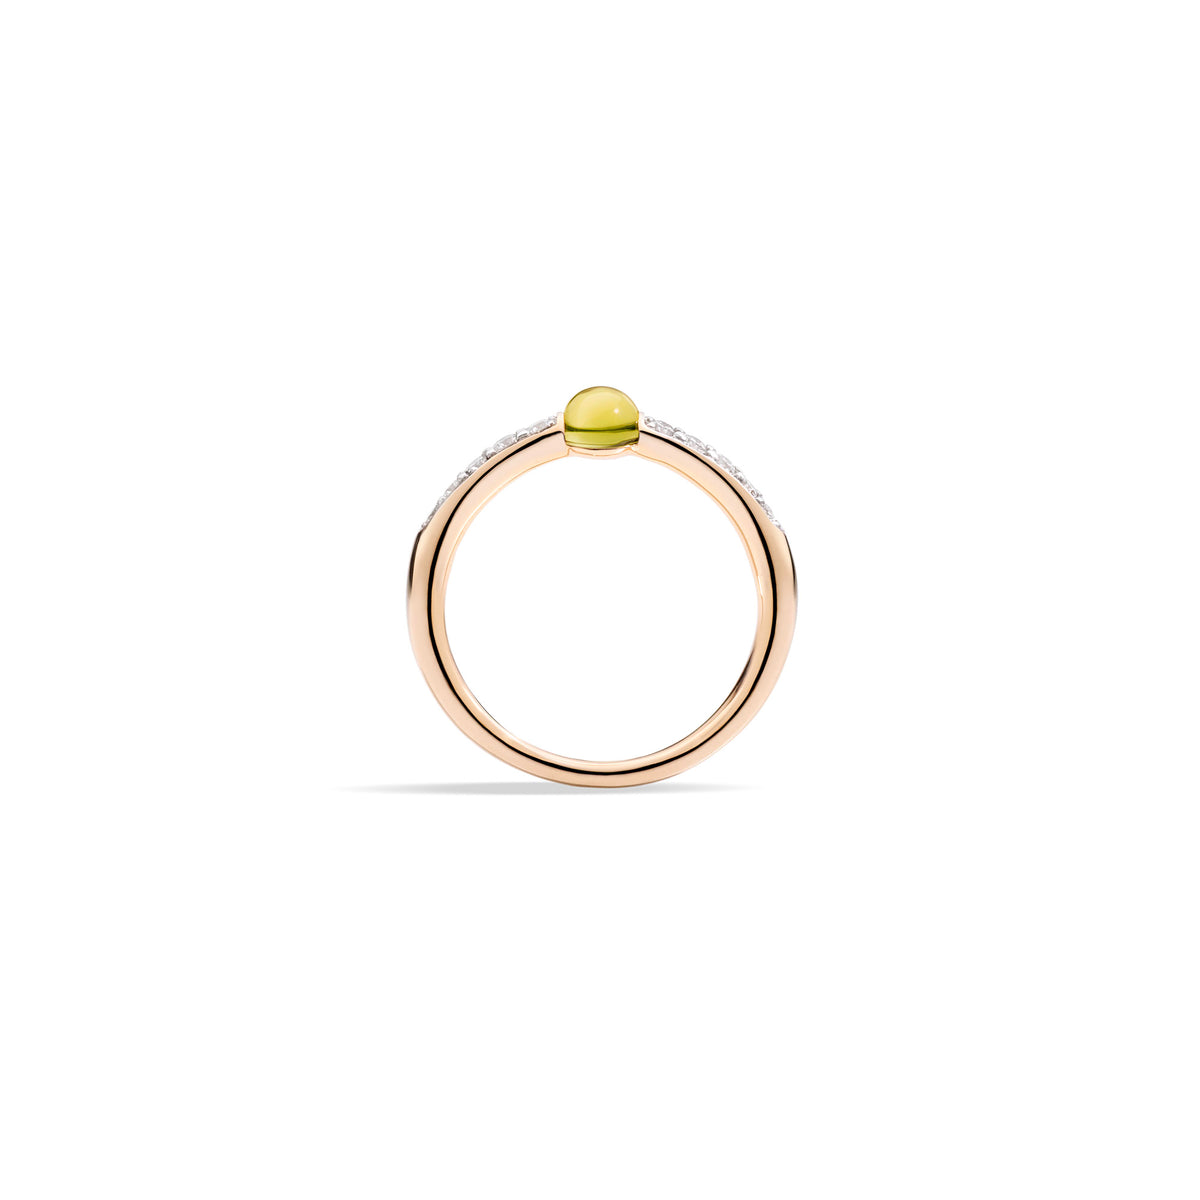 M'ama non M'ama Ring in 18k Rose Gold with Peridot and Diamonds - Orsini Jewellers NZ